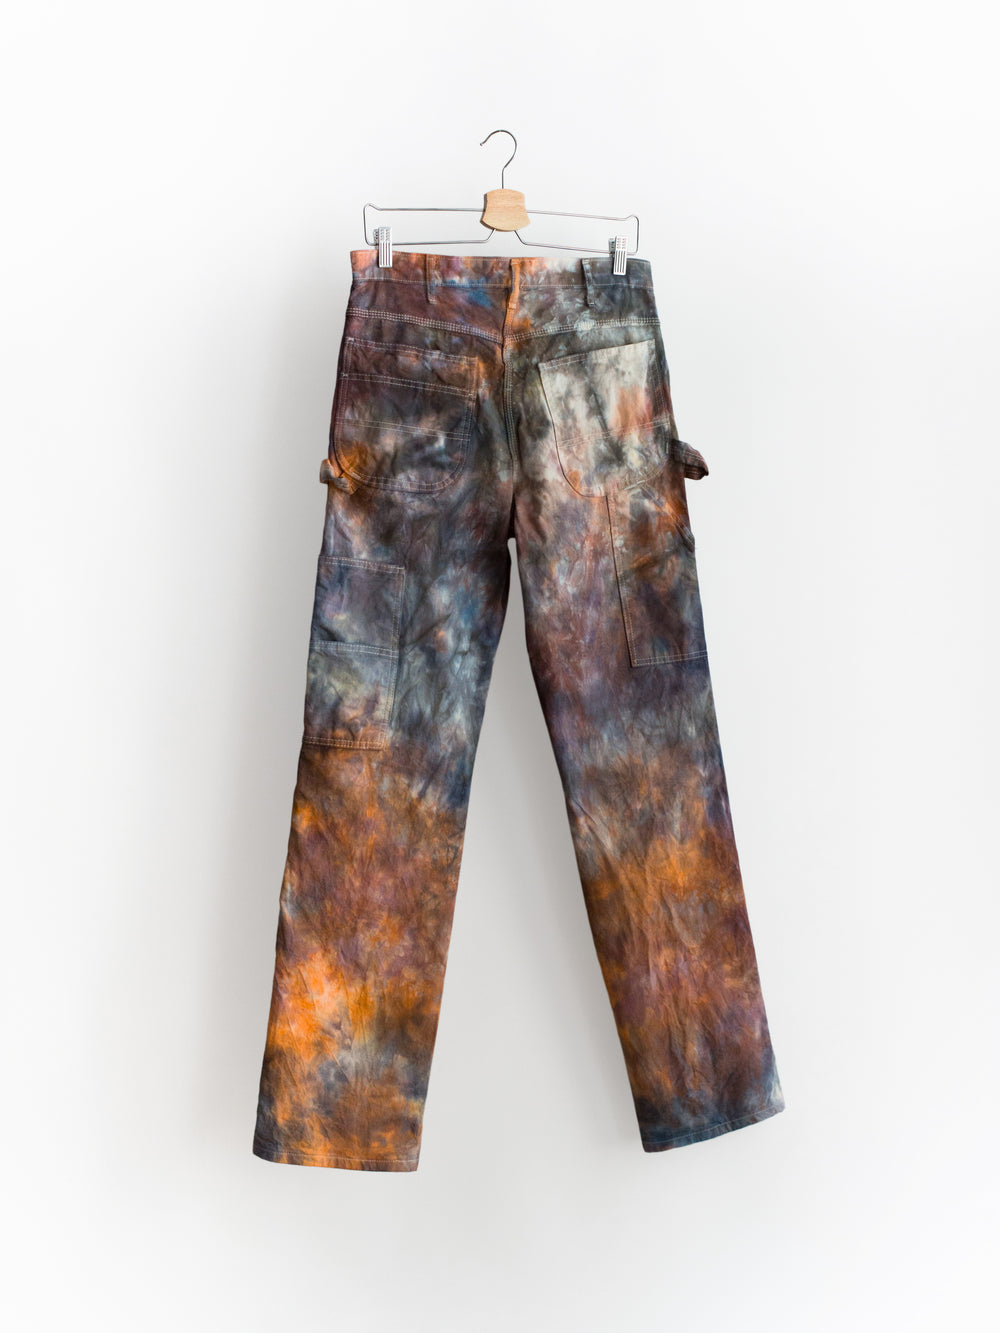 Eddie Yu Hand Dyed Dickies Painter Pants